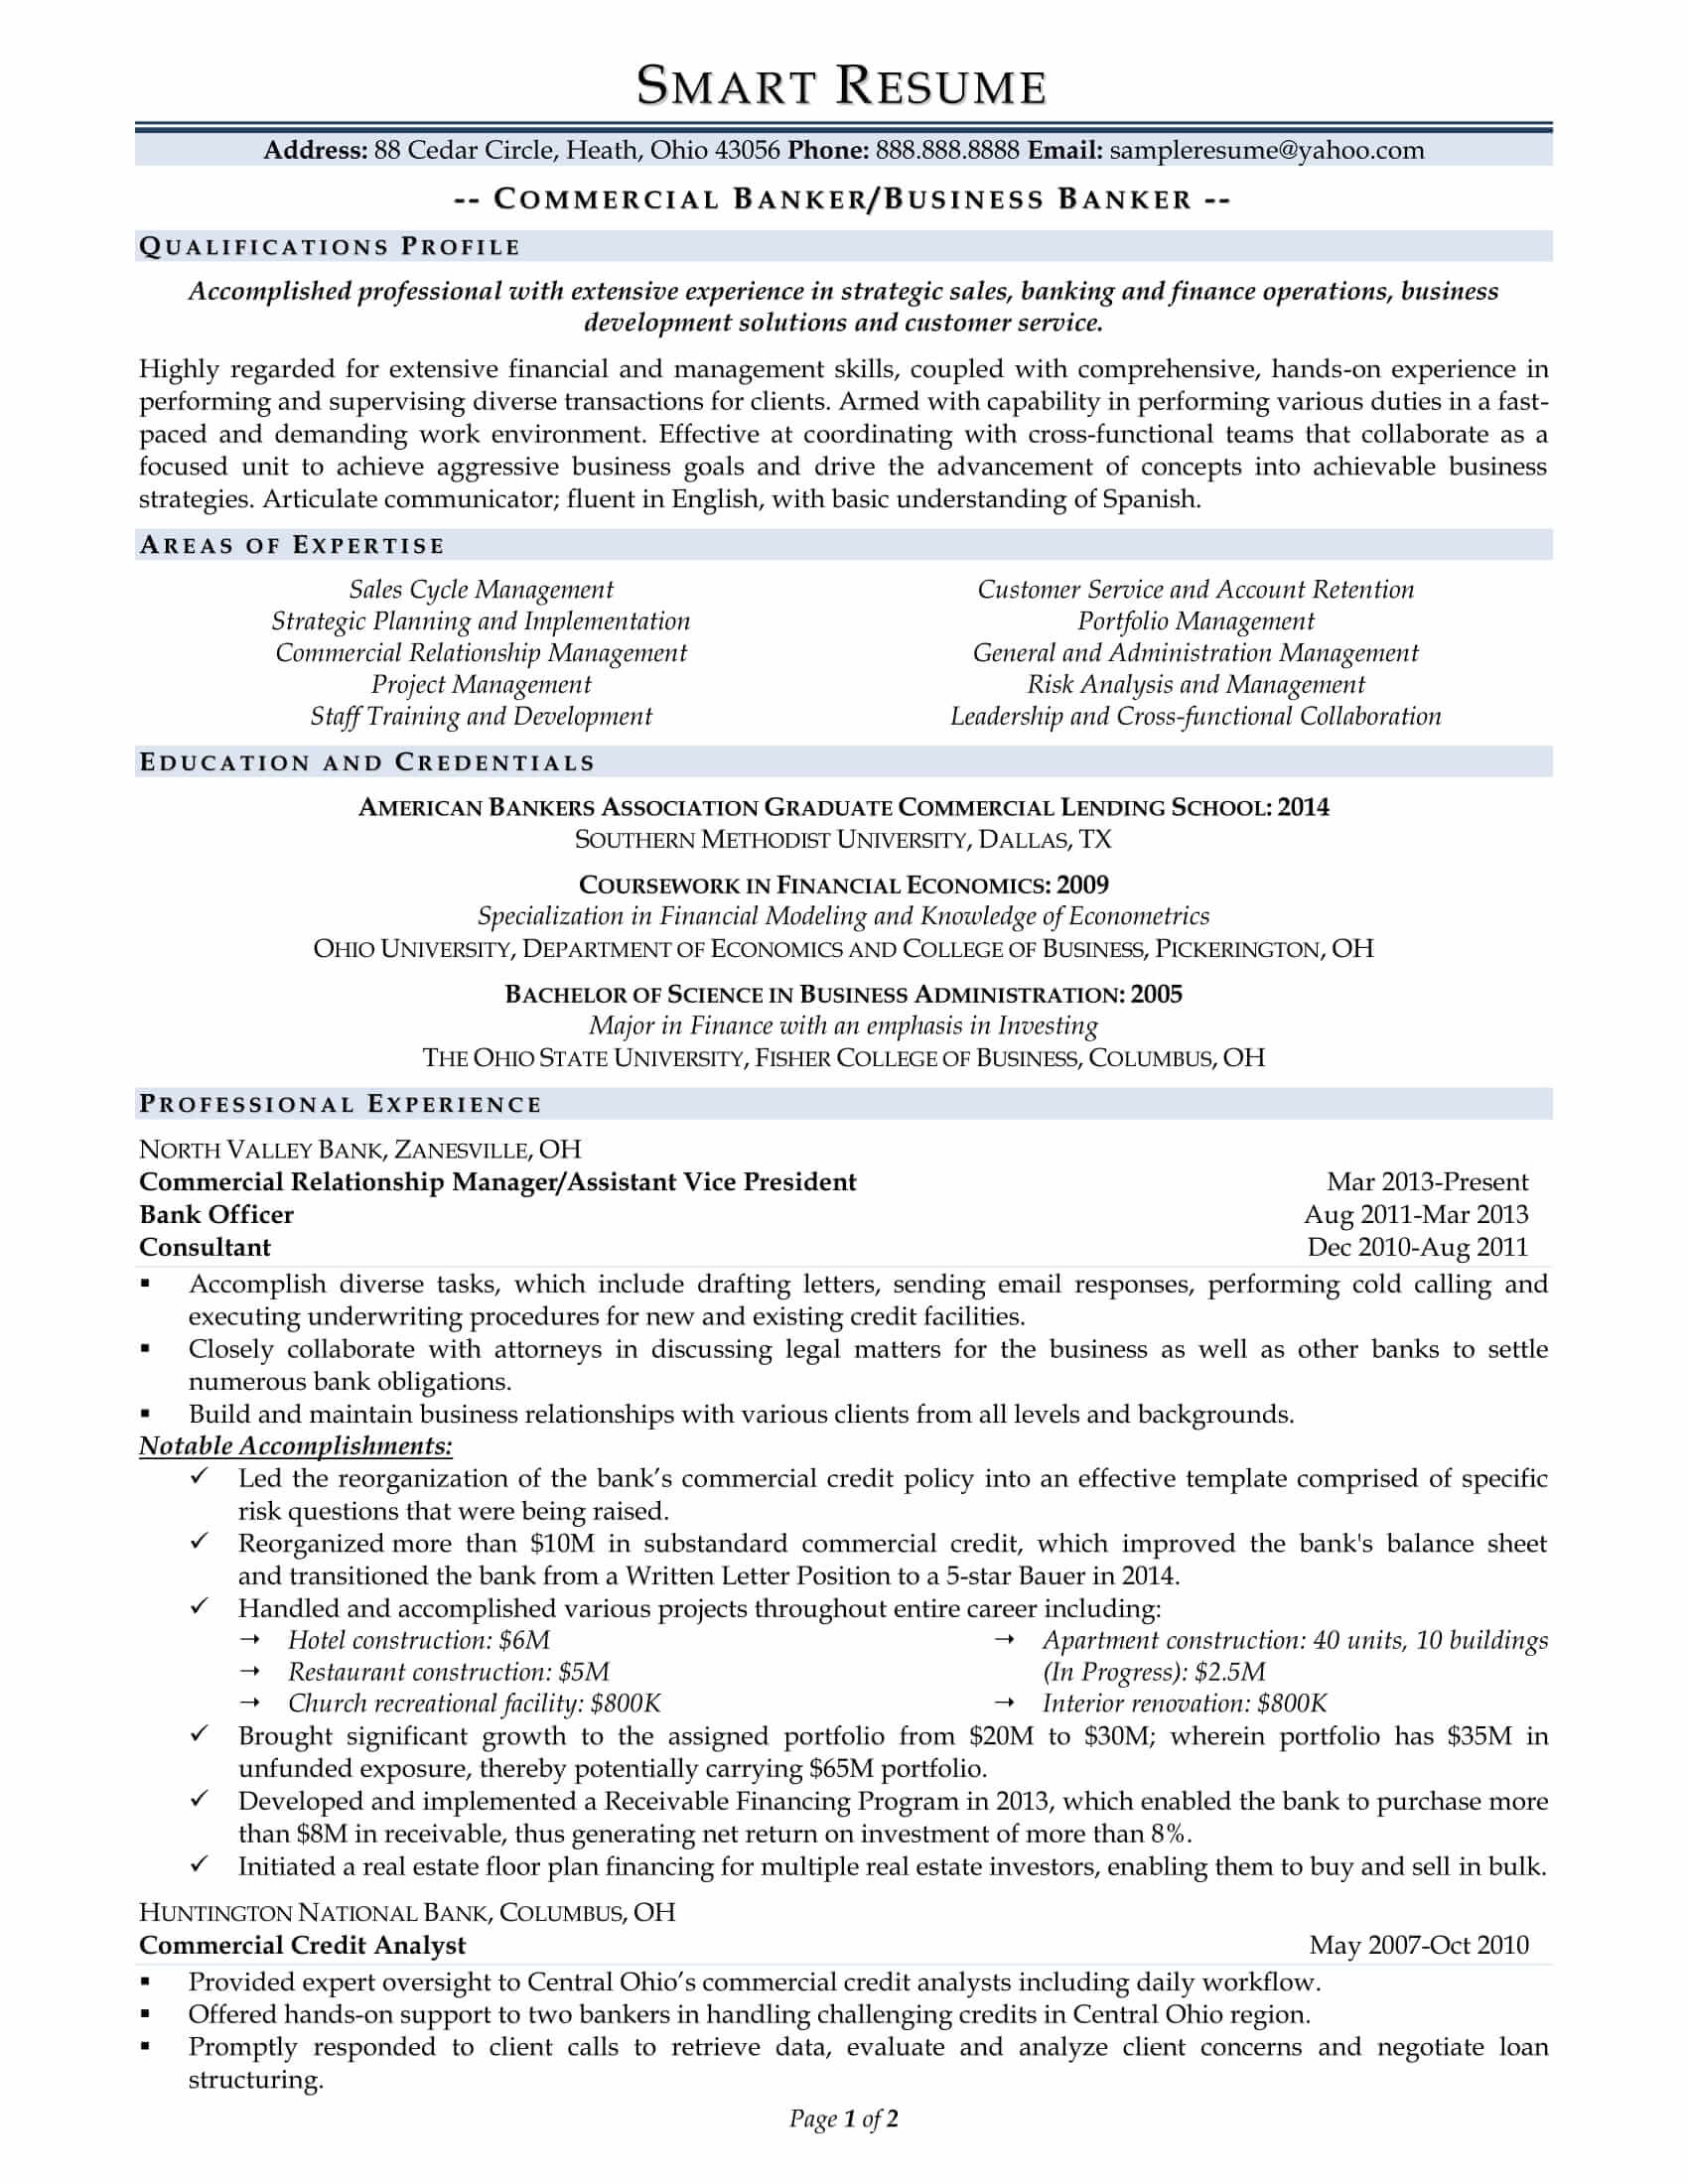 banker resume sample. Resume Example. Resume CV Cover Letter